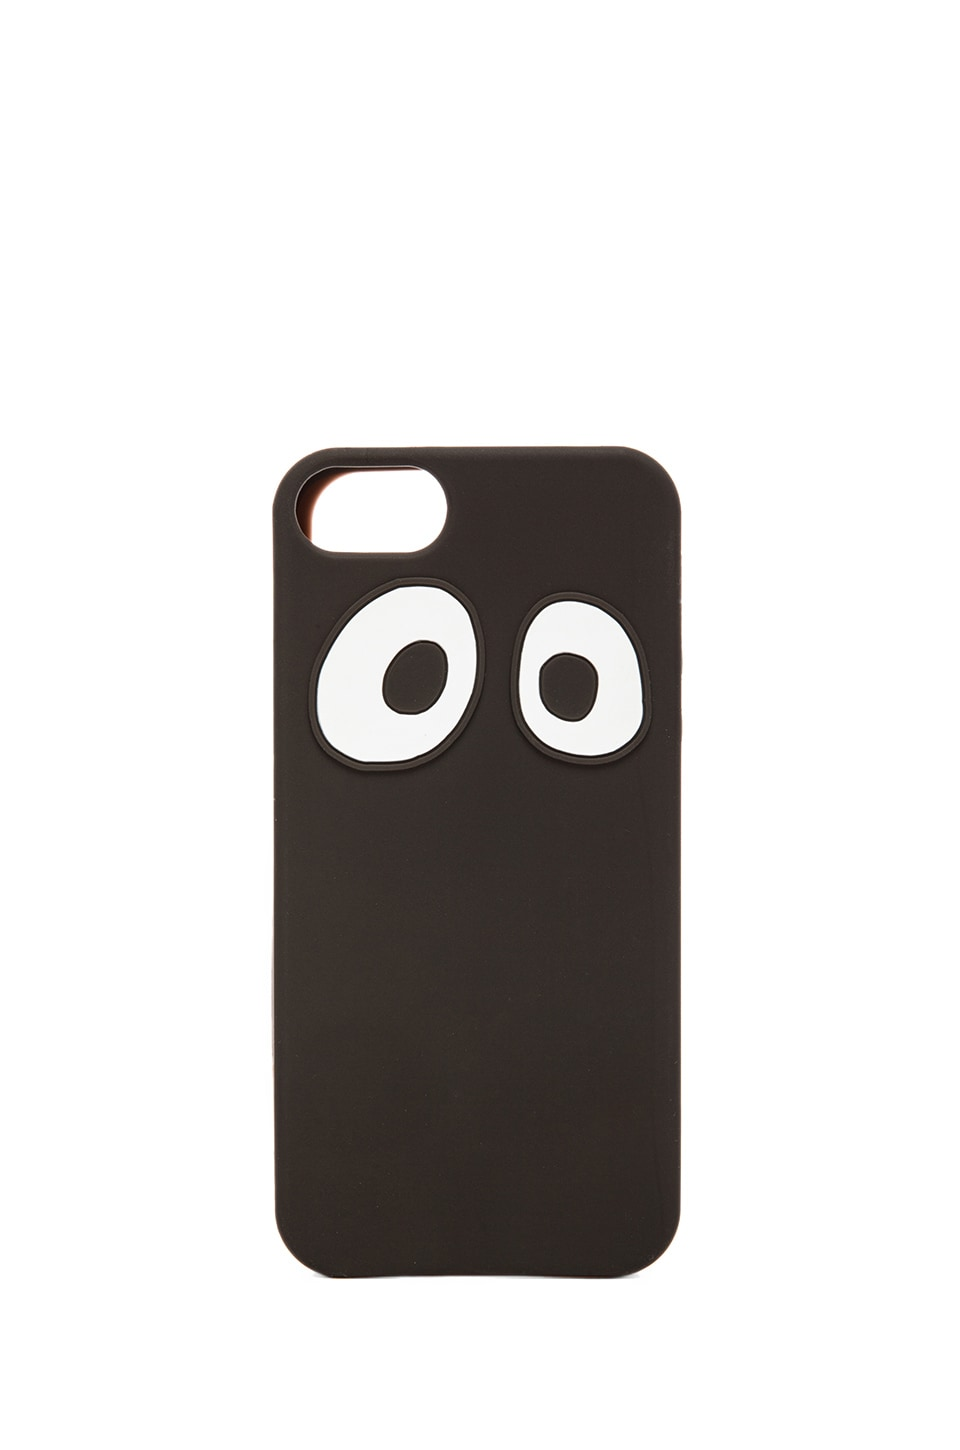 Jack Spade Googly Eyes Soft iPhone 5 Case in Black